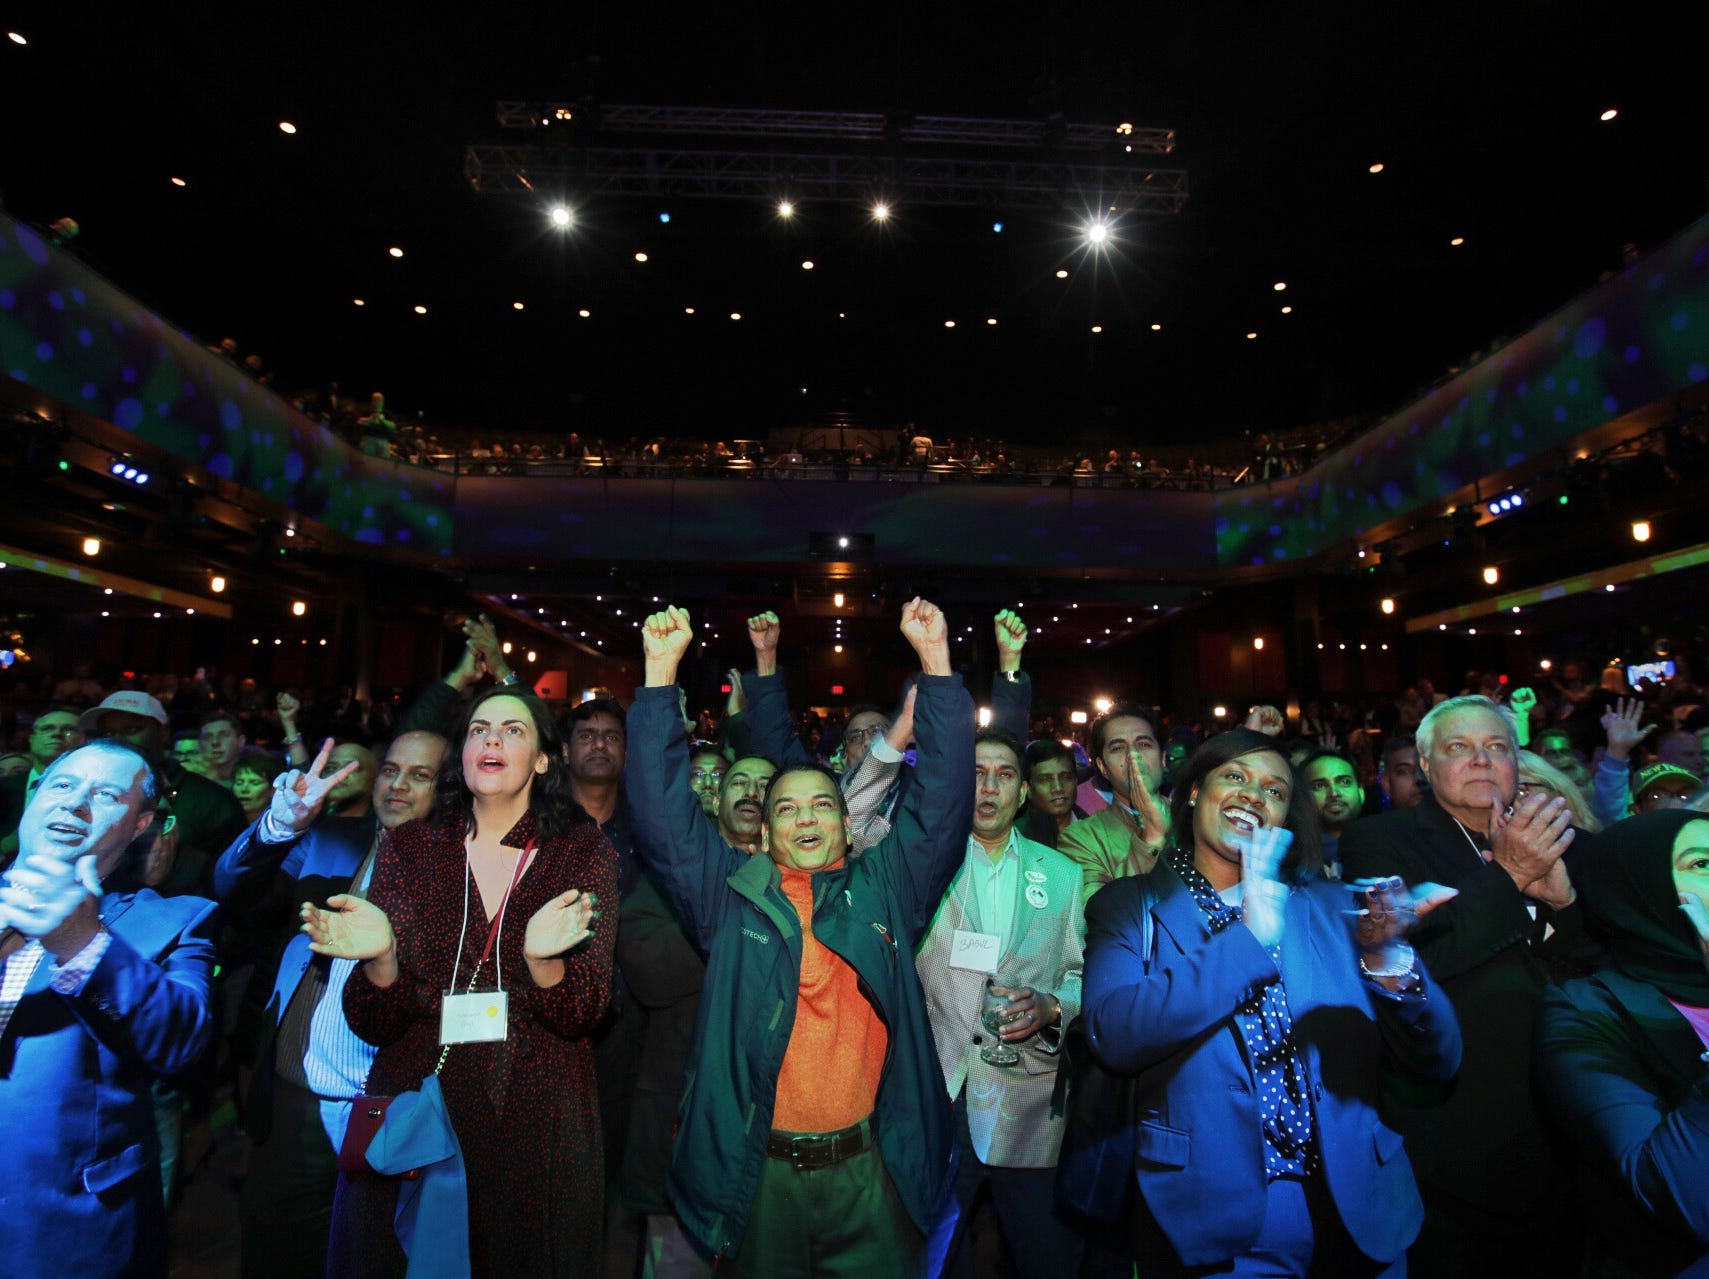 The crowd cheers as Debbie Dingell addresses the crowd during the Democrat's watch party celebration at MotorCity Casino's Sound Board in Detroit on Tuesday, Nov. 6, 2018.